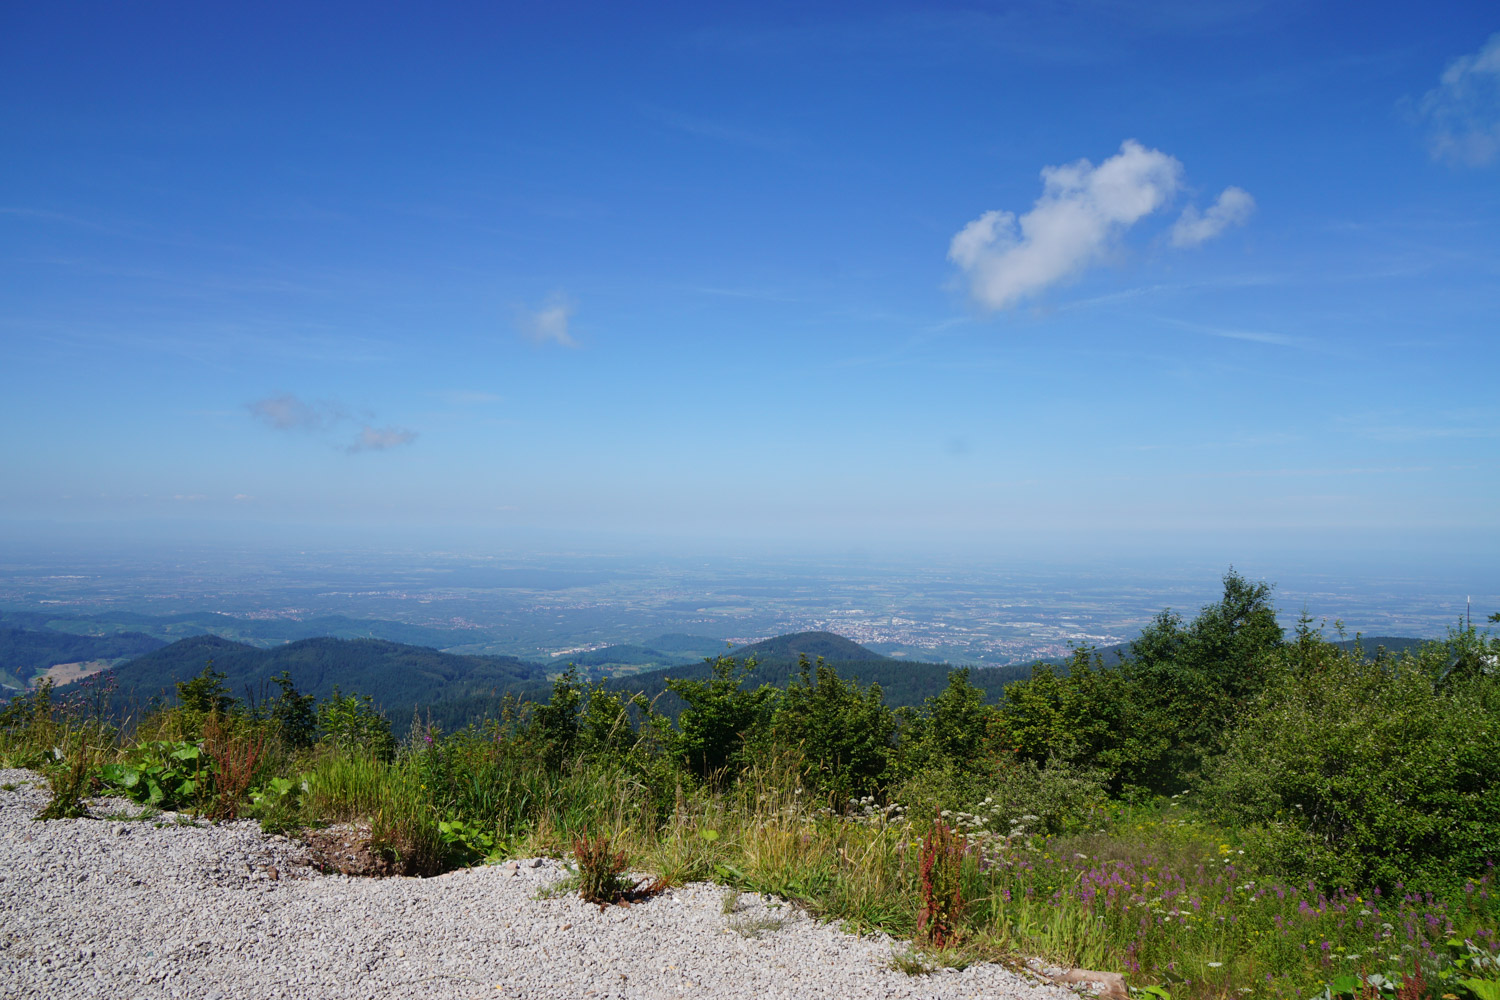 View from the 'Hornisgrinde'